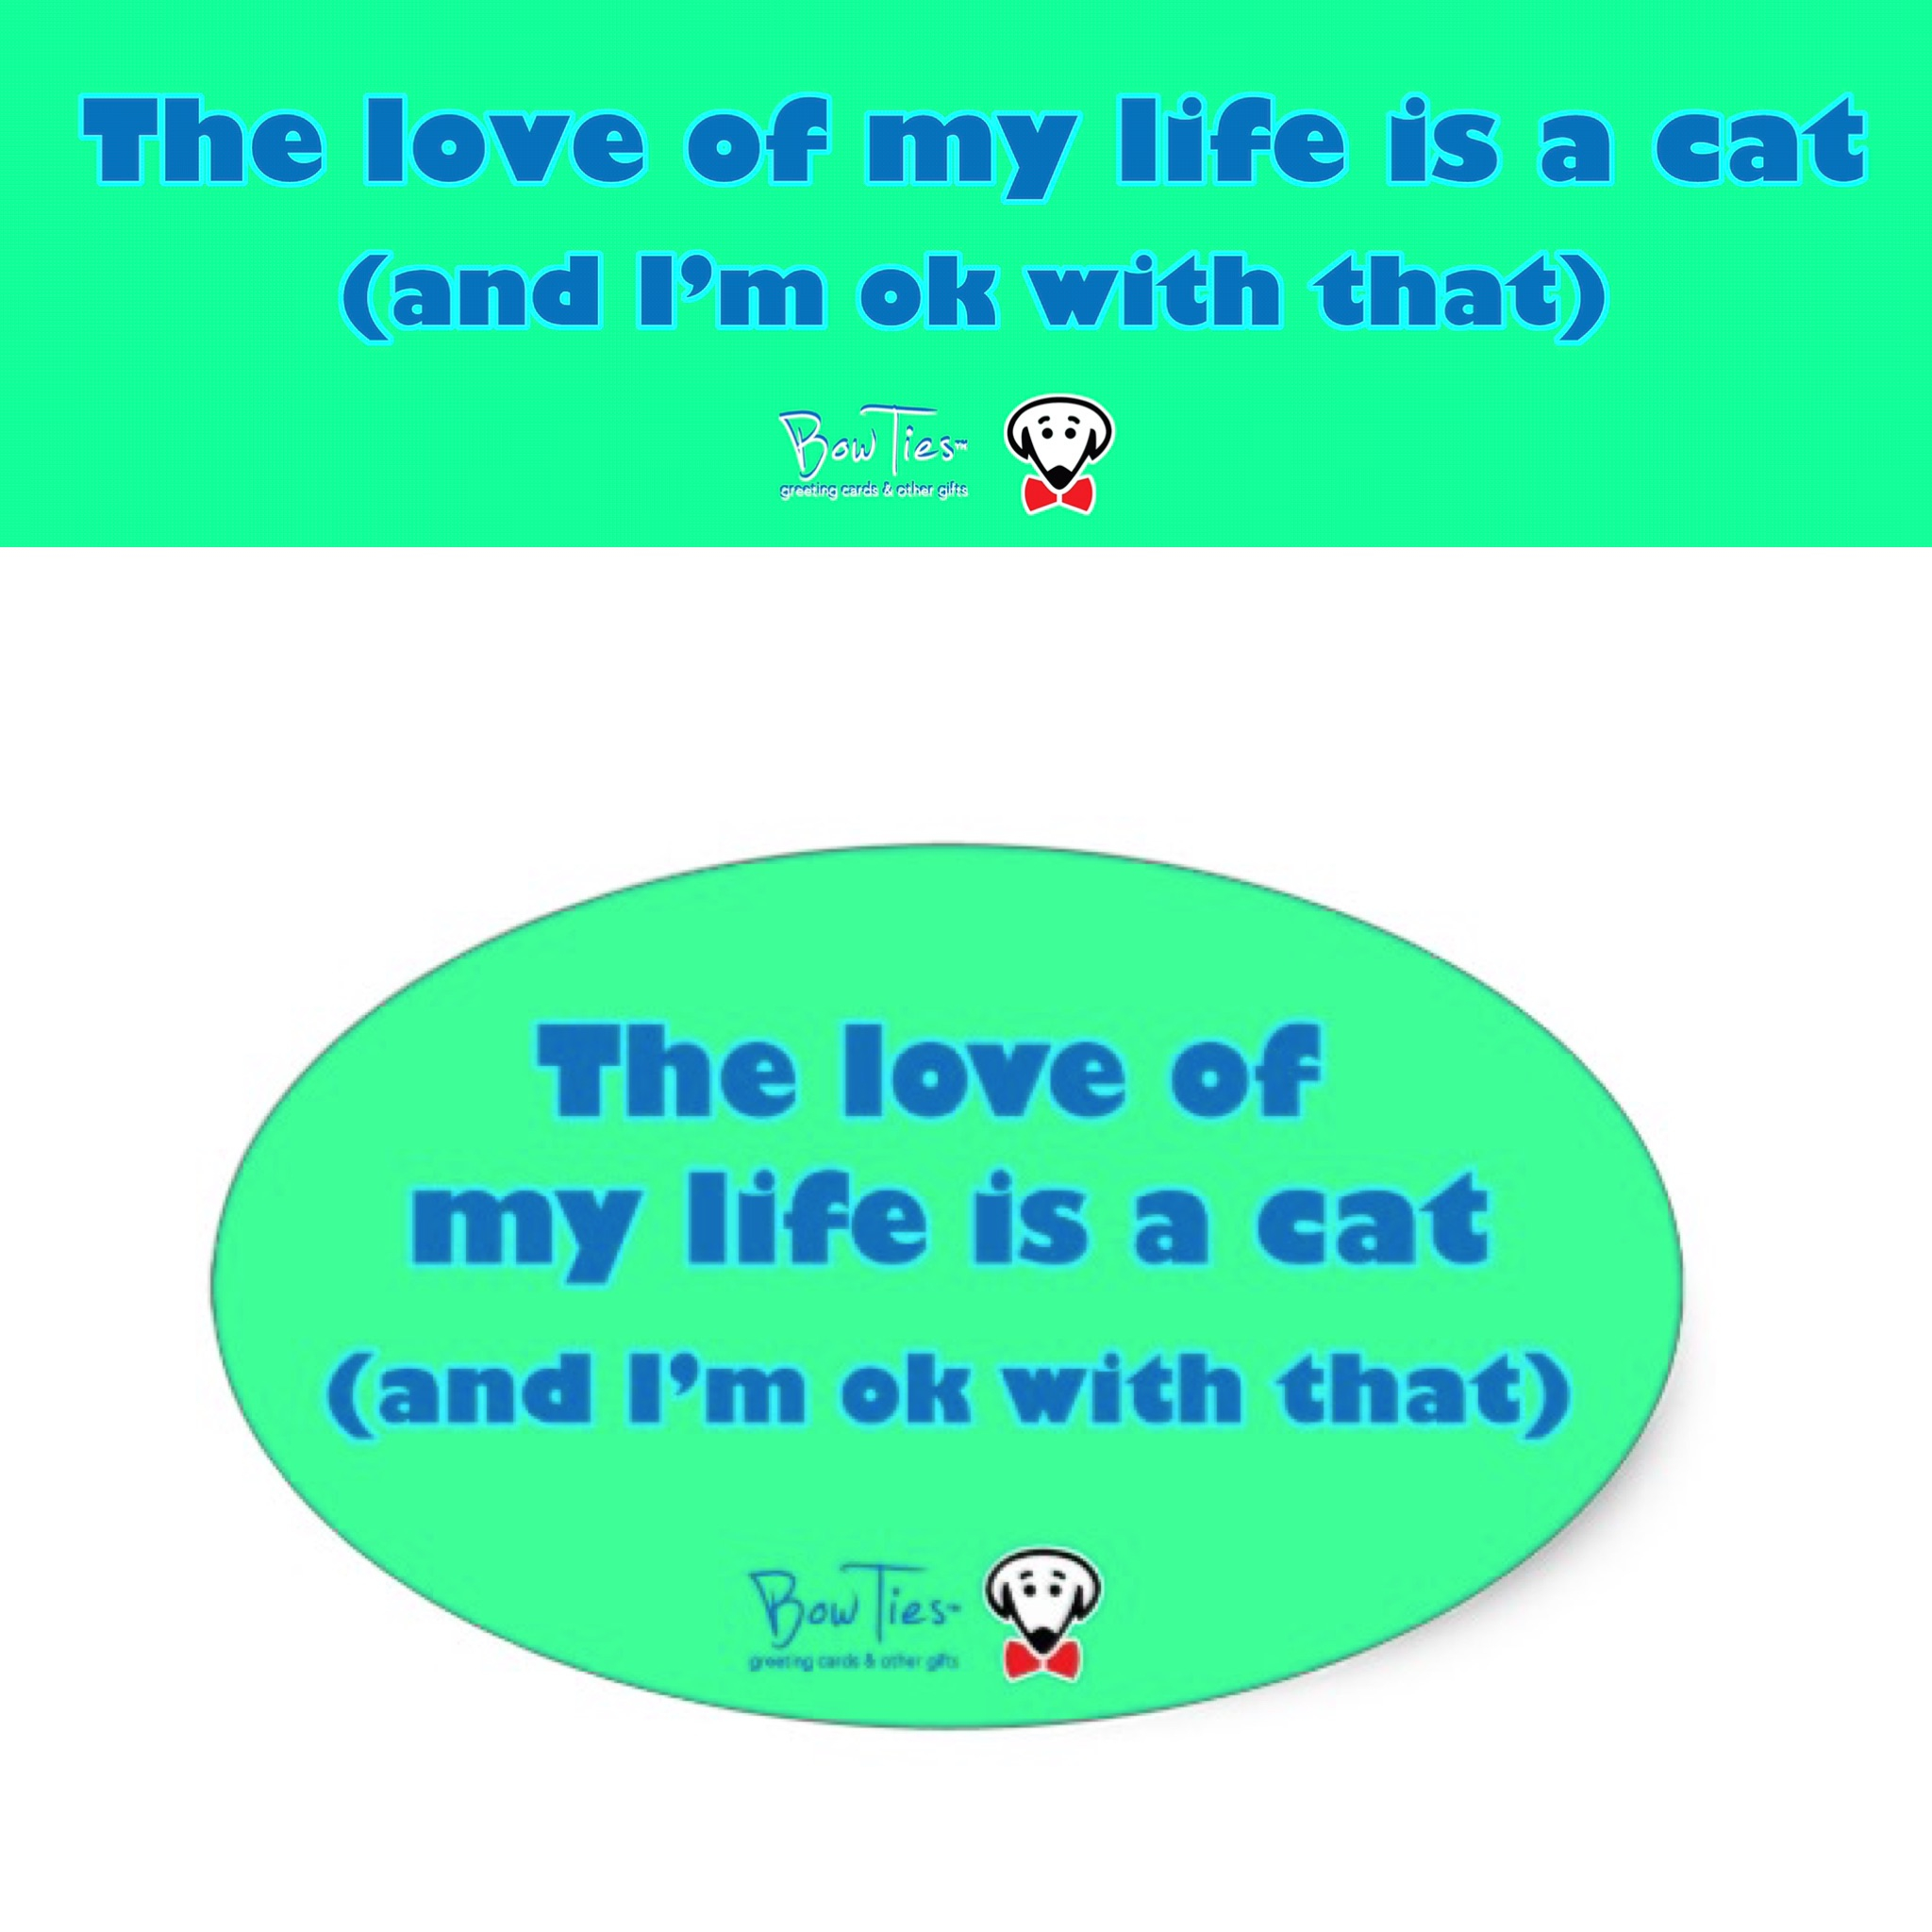 The love of my life is a cat (and I'm ok with that) – sticker